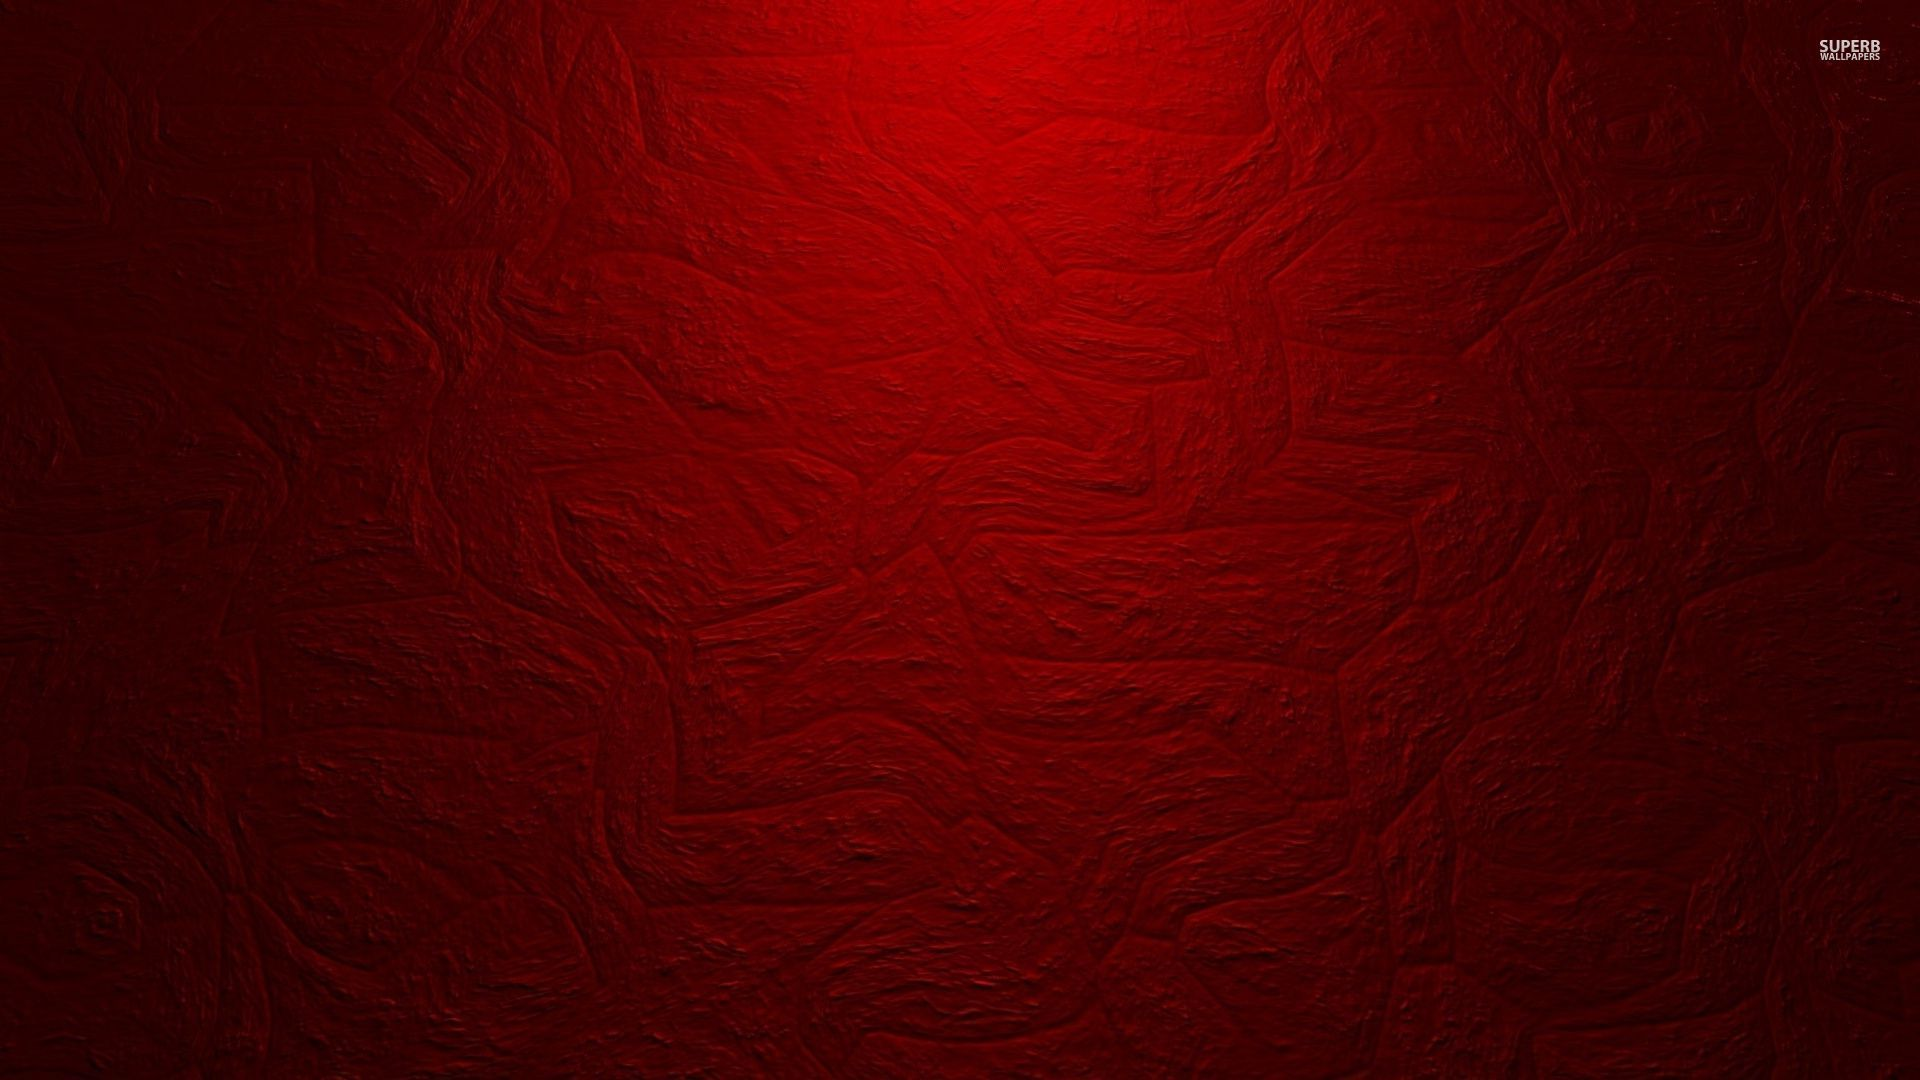 black and red texture hd wallpaper high resolution wallpaper 1920x1080 px 160 28 kb red wallpaper iphone wallpaper vintage high resolution wallpapers pinterest